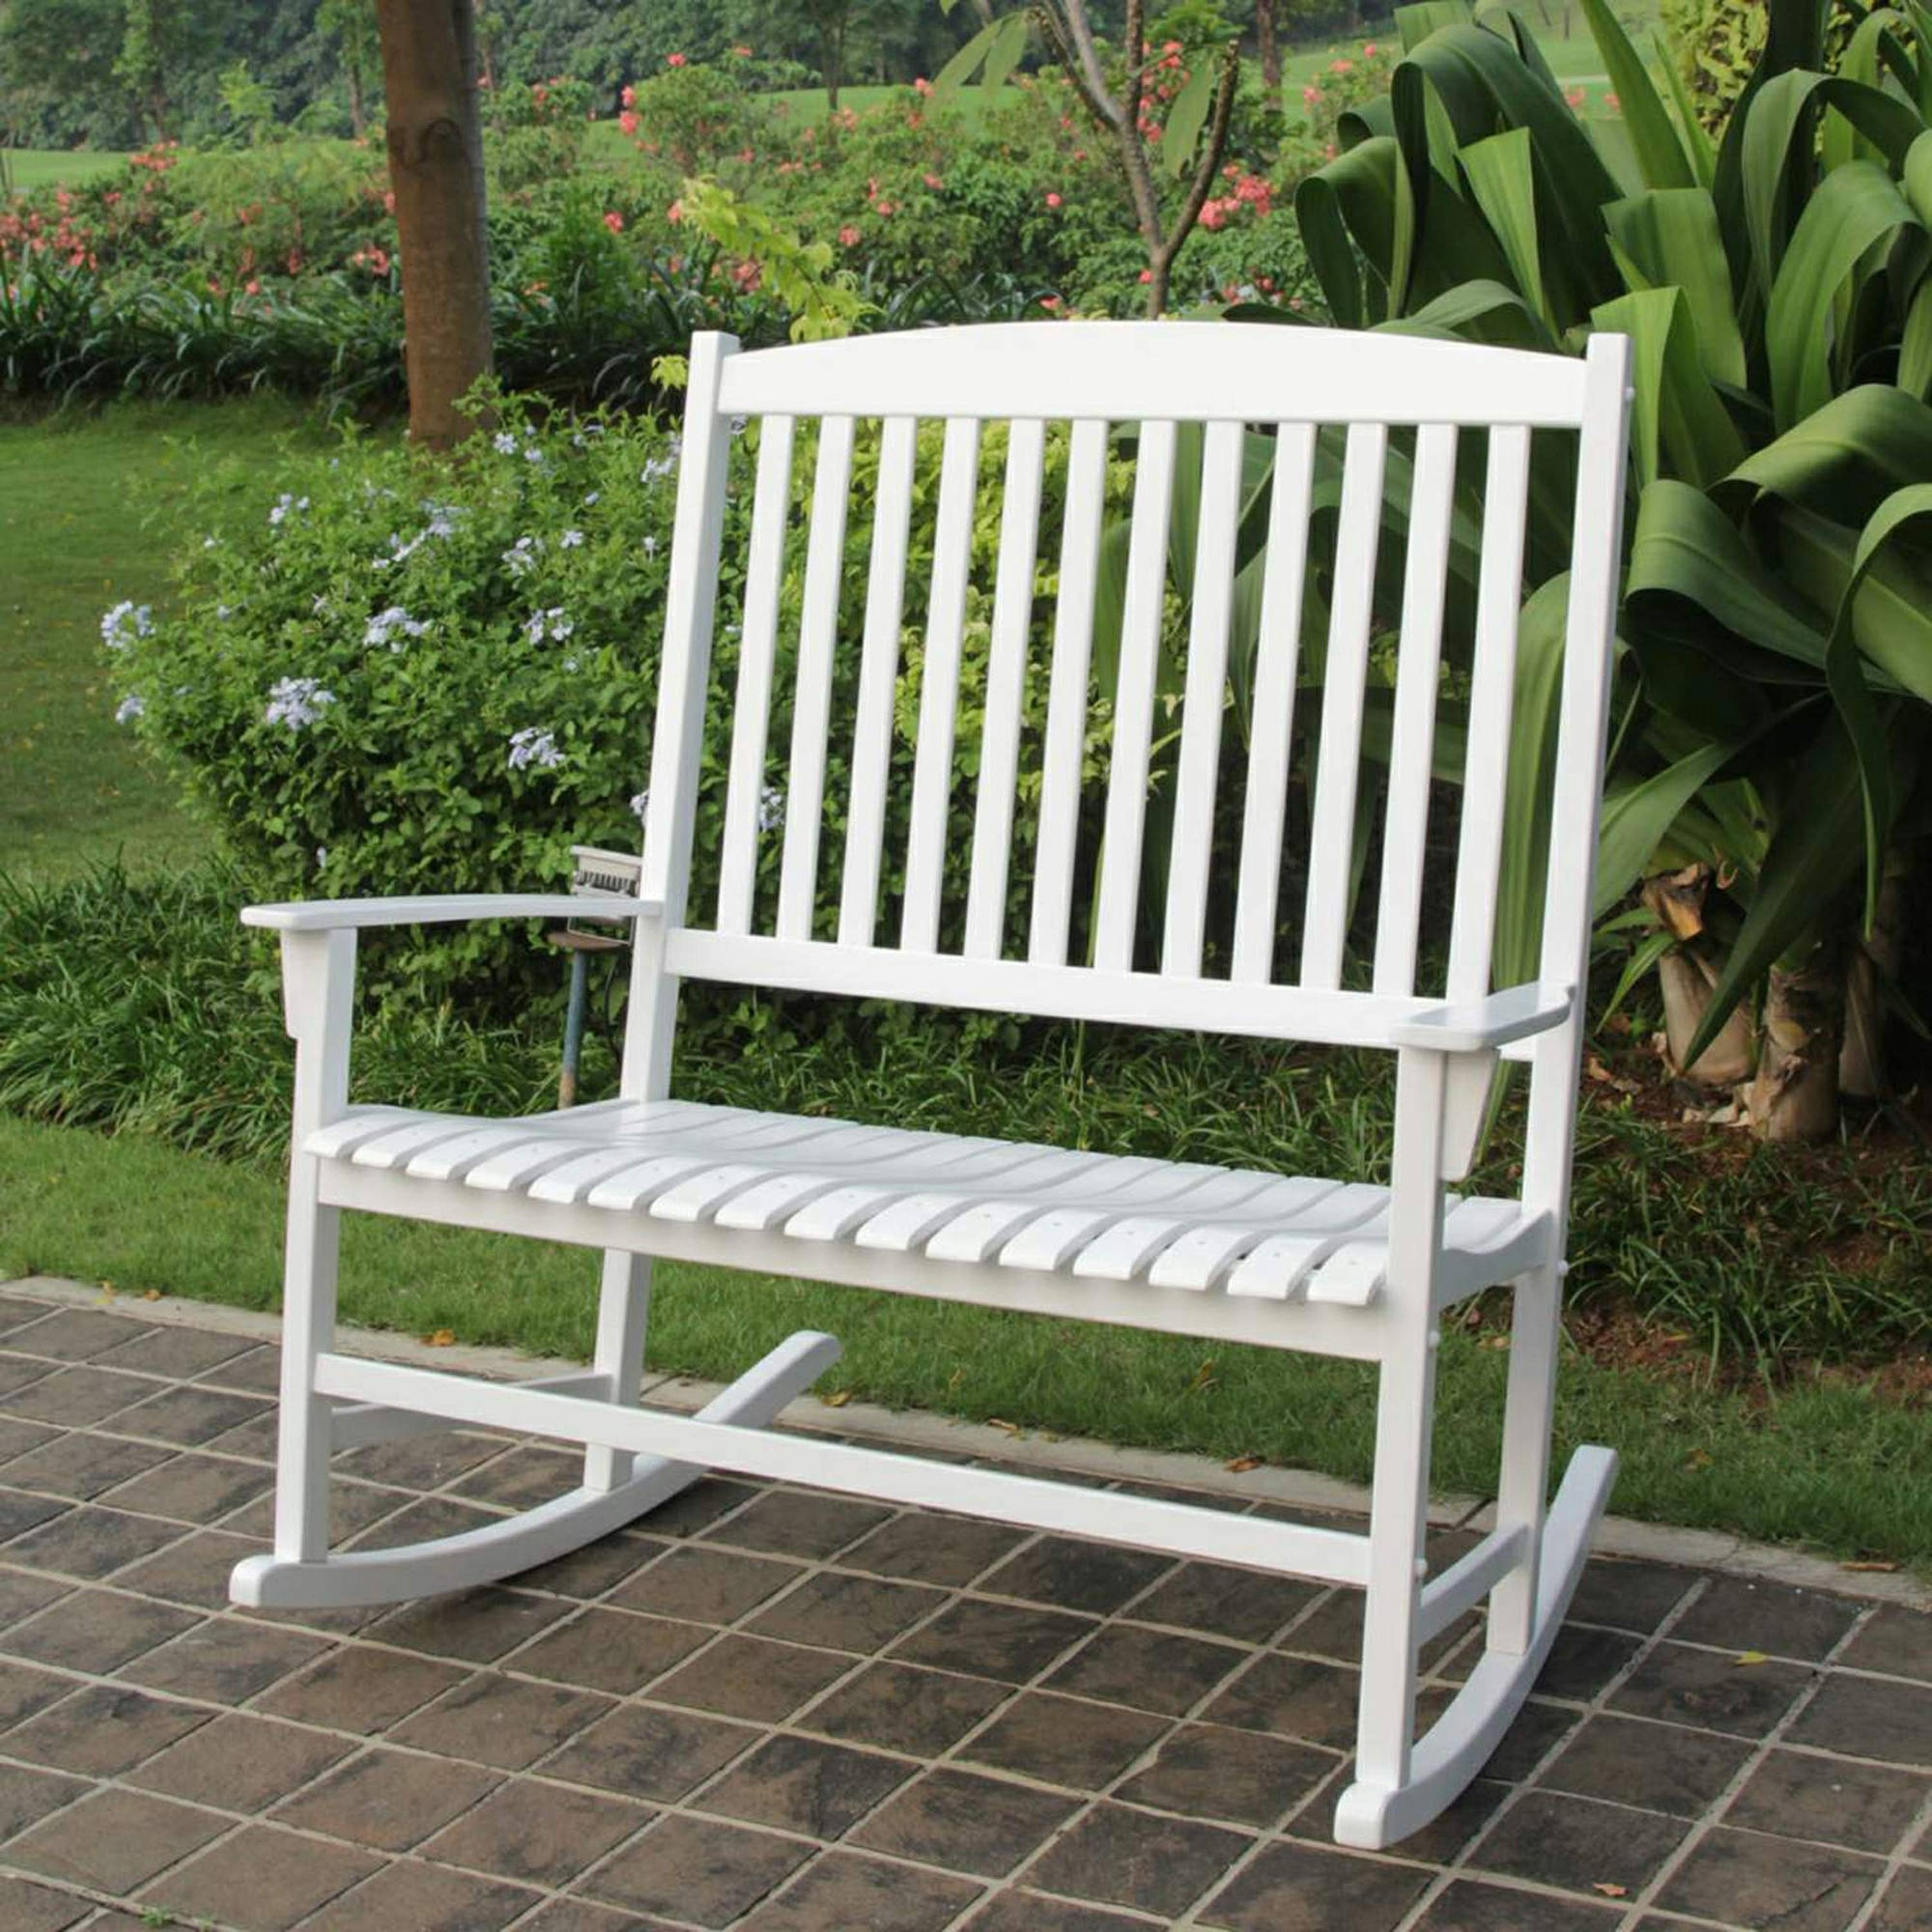 Patio Loveseat White Hardwood Outdoor Rocking Chair For 2 Inside Patio Wooden Rocking Chairs (#14 of 15)